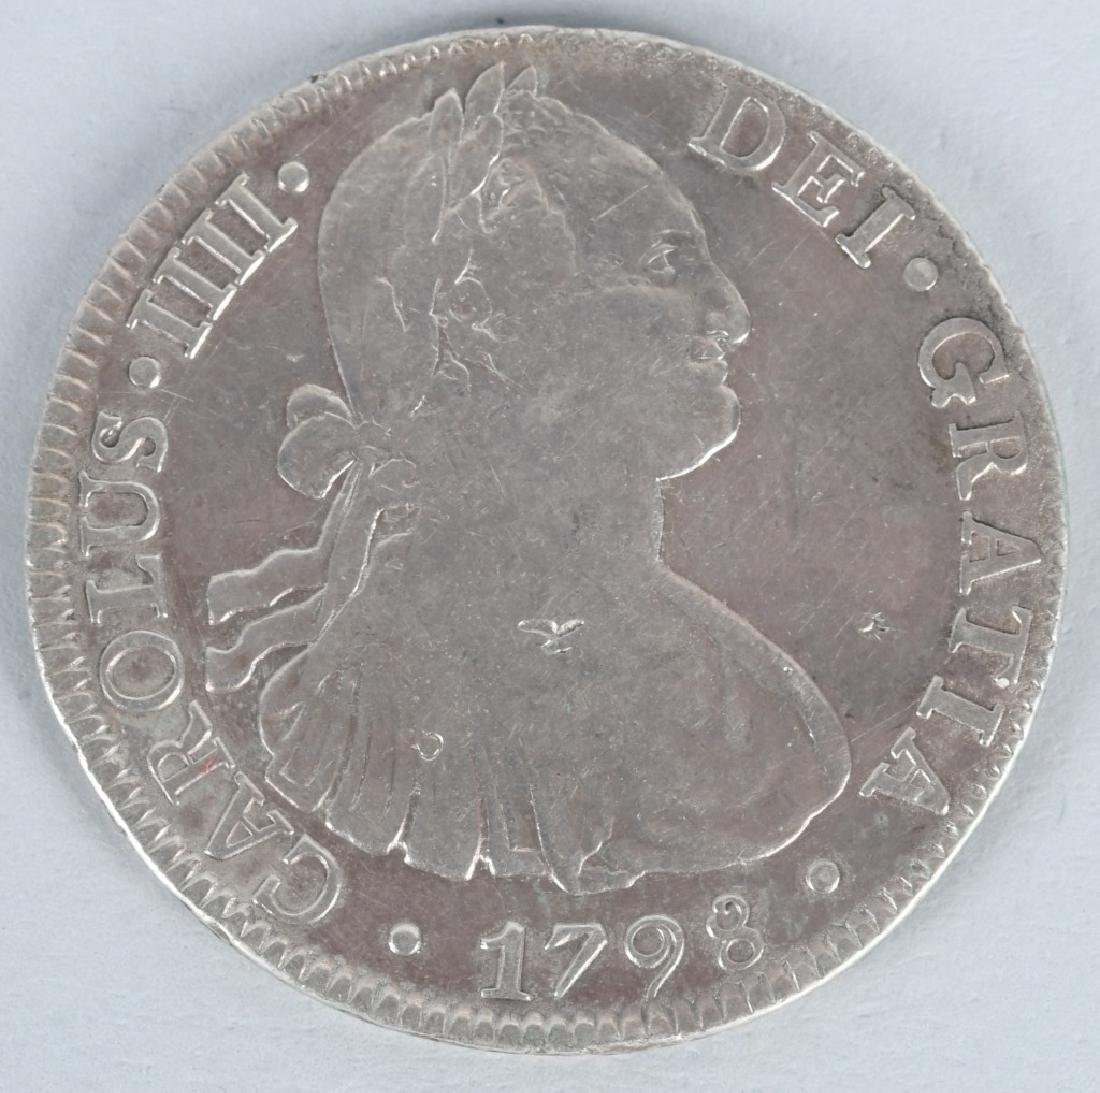 1798 SILVER 8 REALES COIN